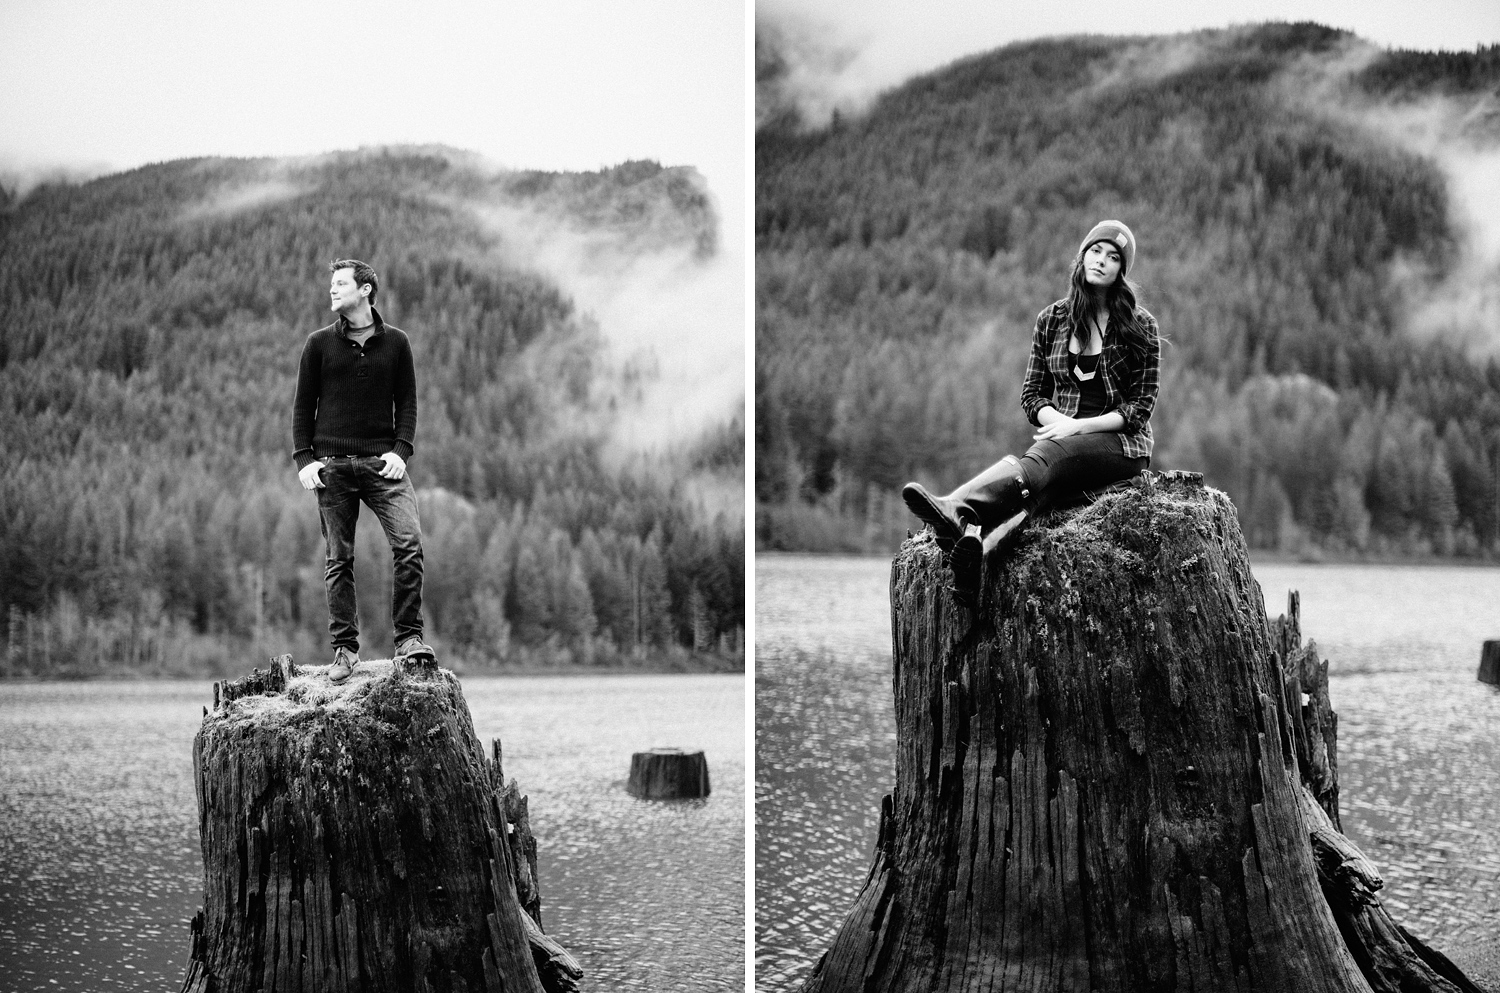 ryan-flynn-photography-rattlesnake-lake-engagement-film-blog-0008.JPG